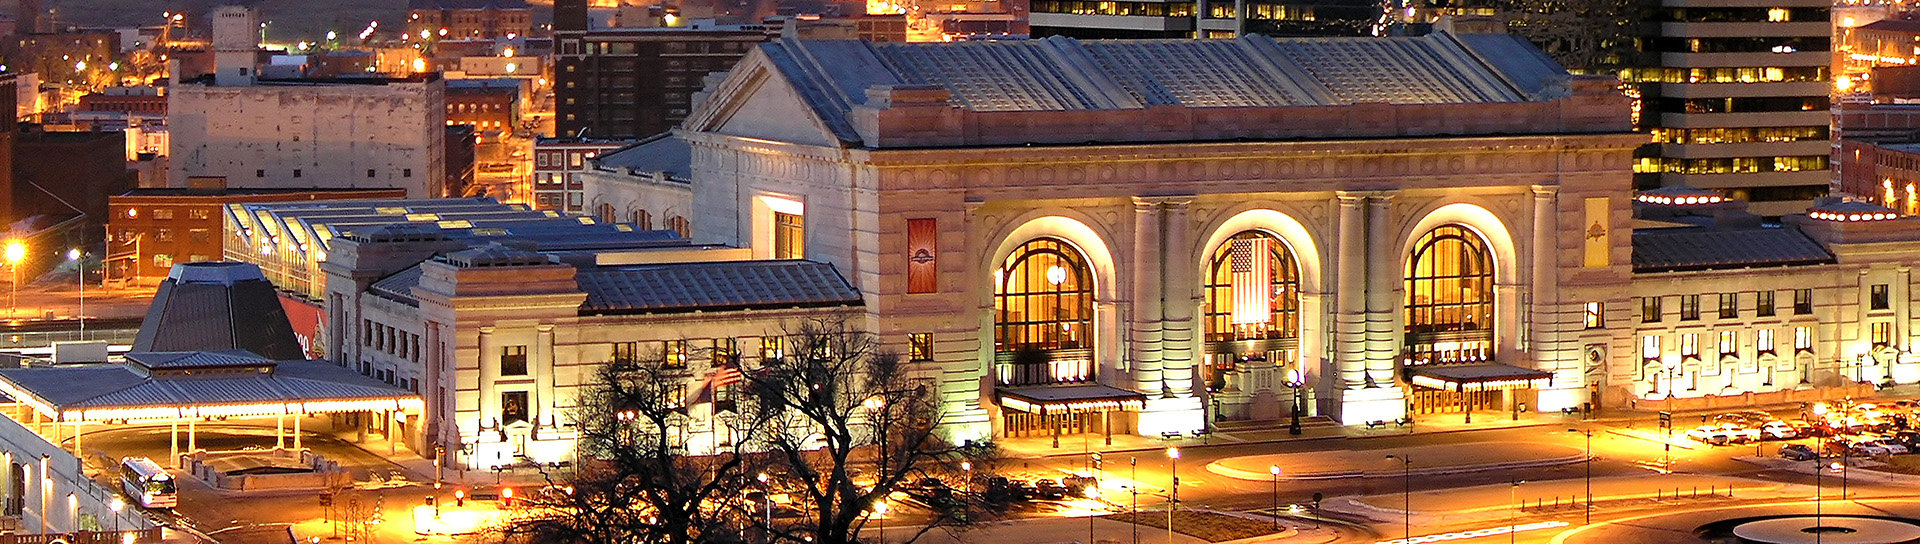 Kansas City's Historic Union Station